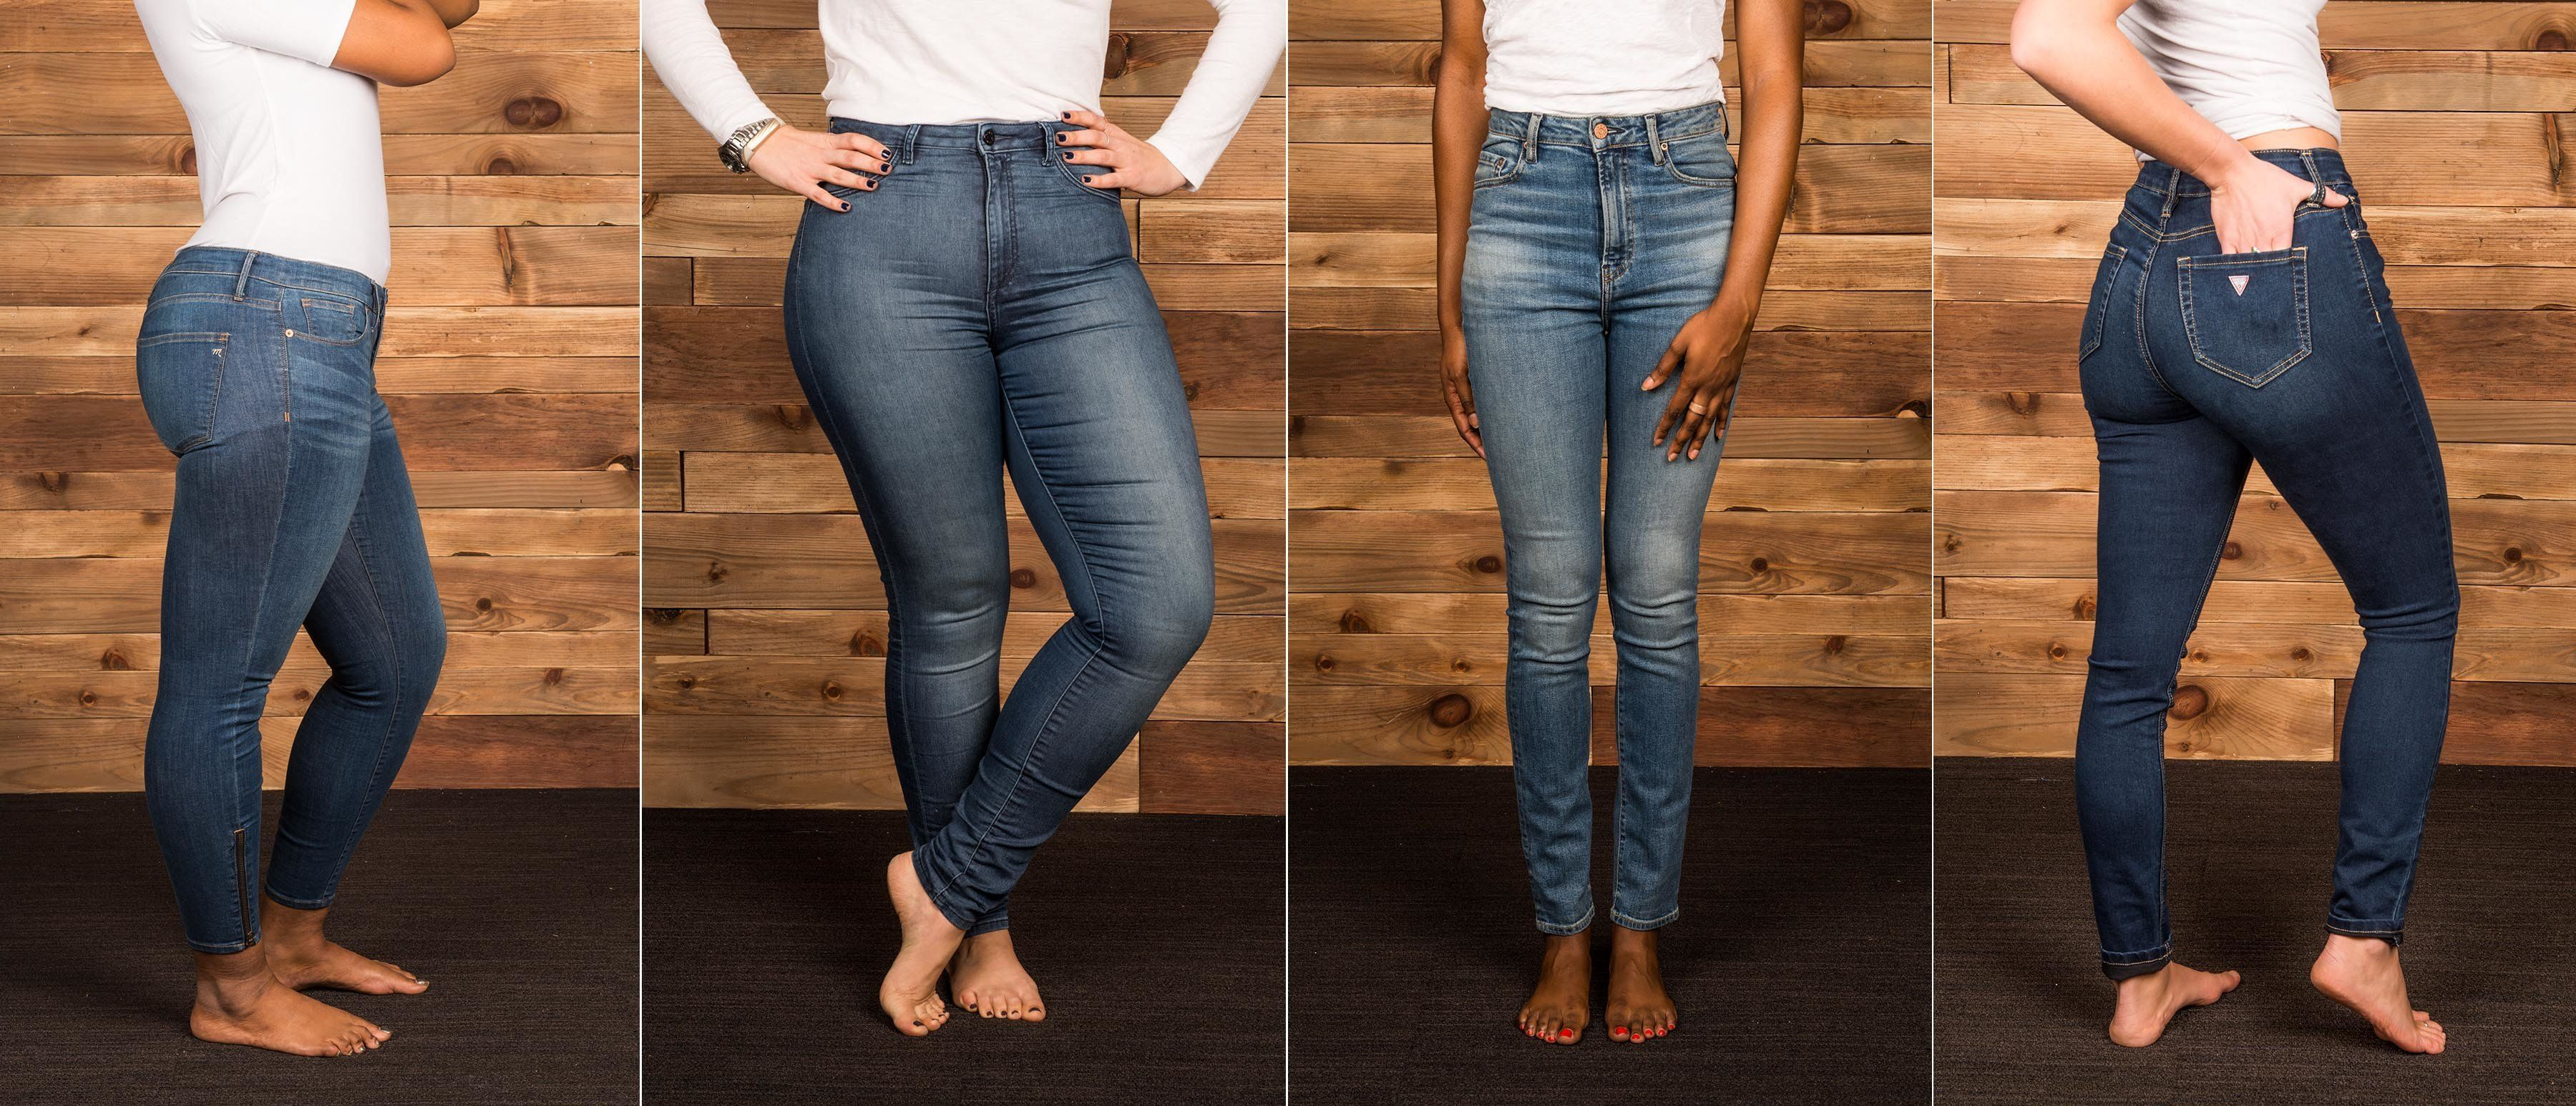 Skinny jeans to loose